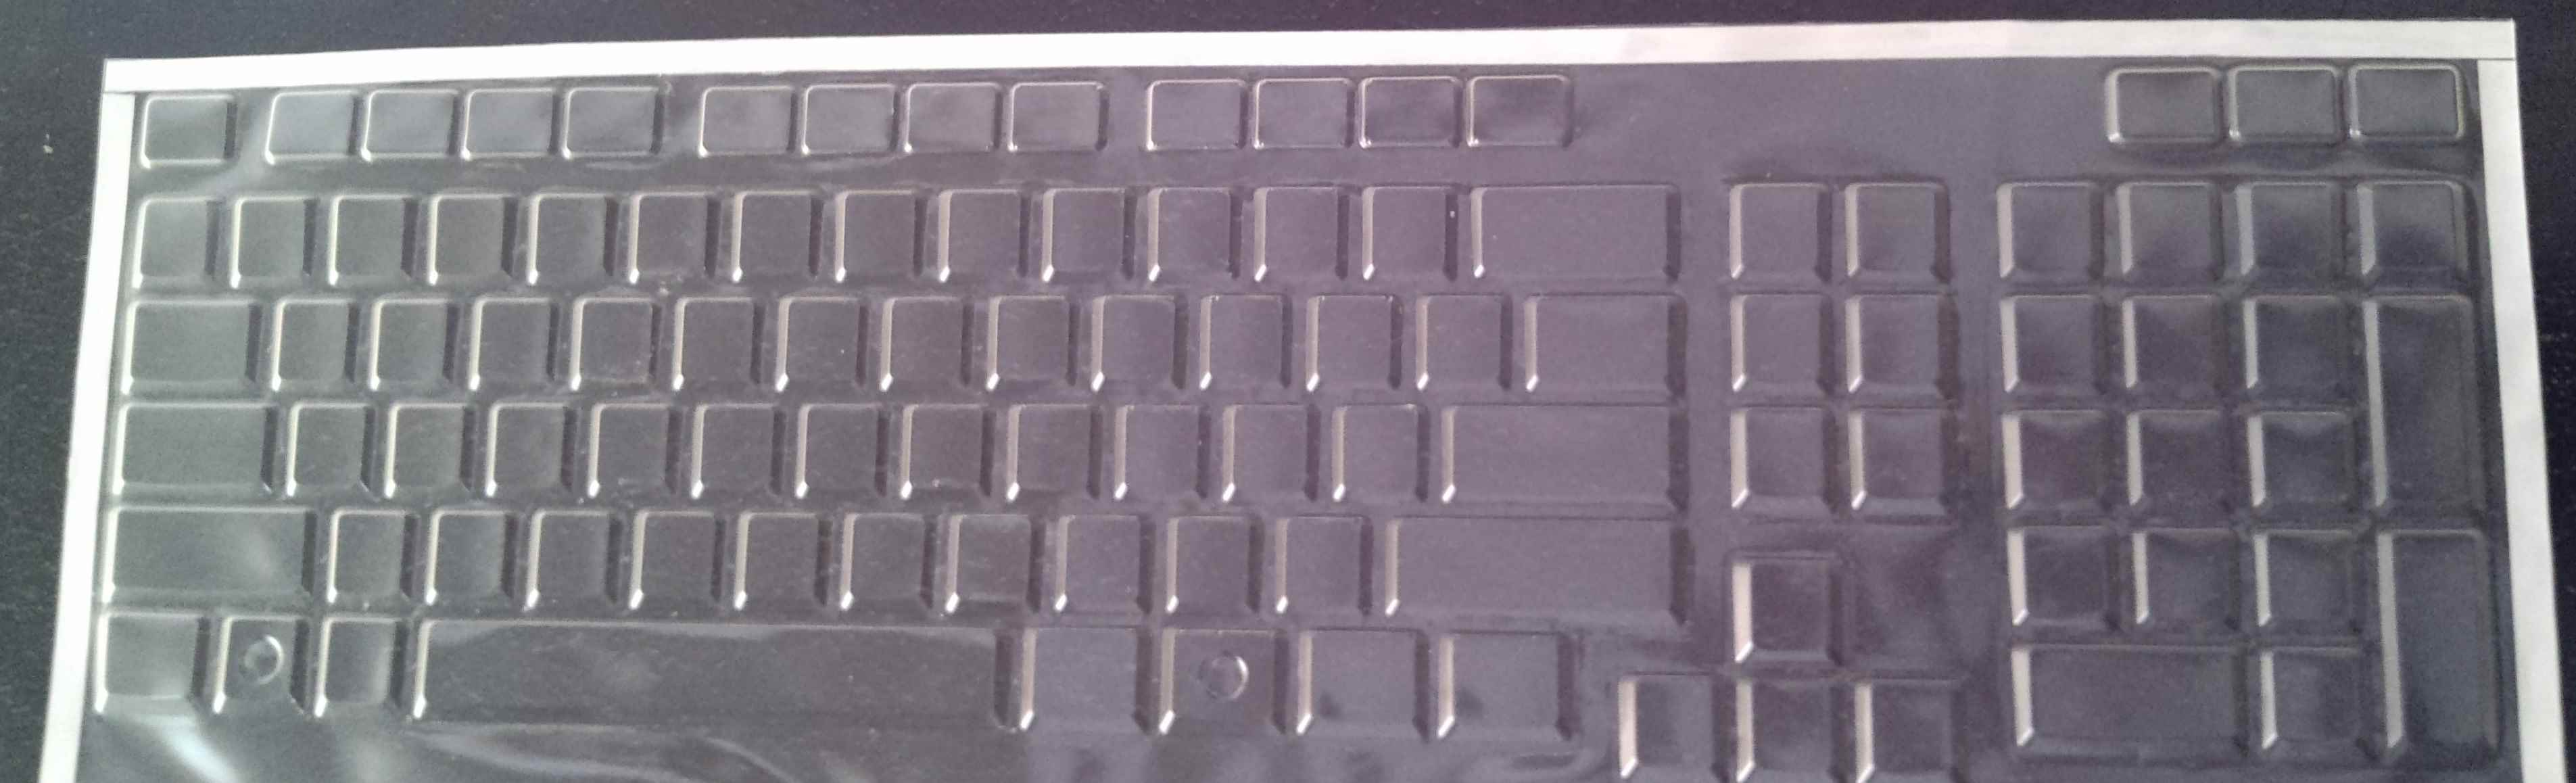 Dell SK8185 Keyboard Cover (COVERS KEYS ONLY)